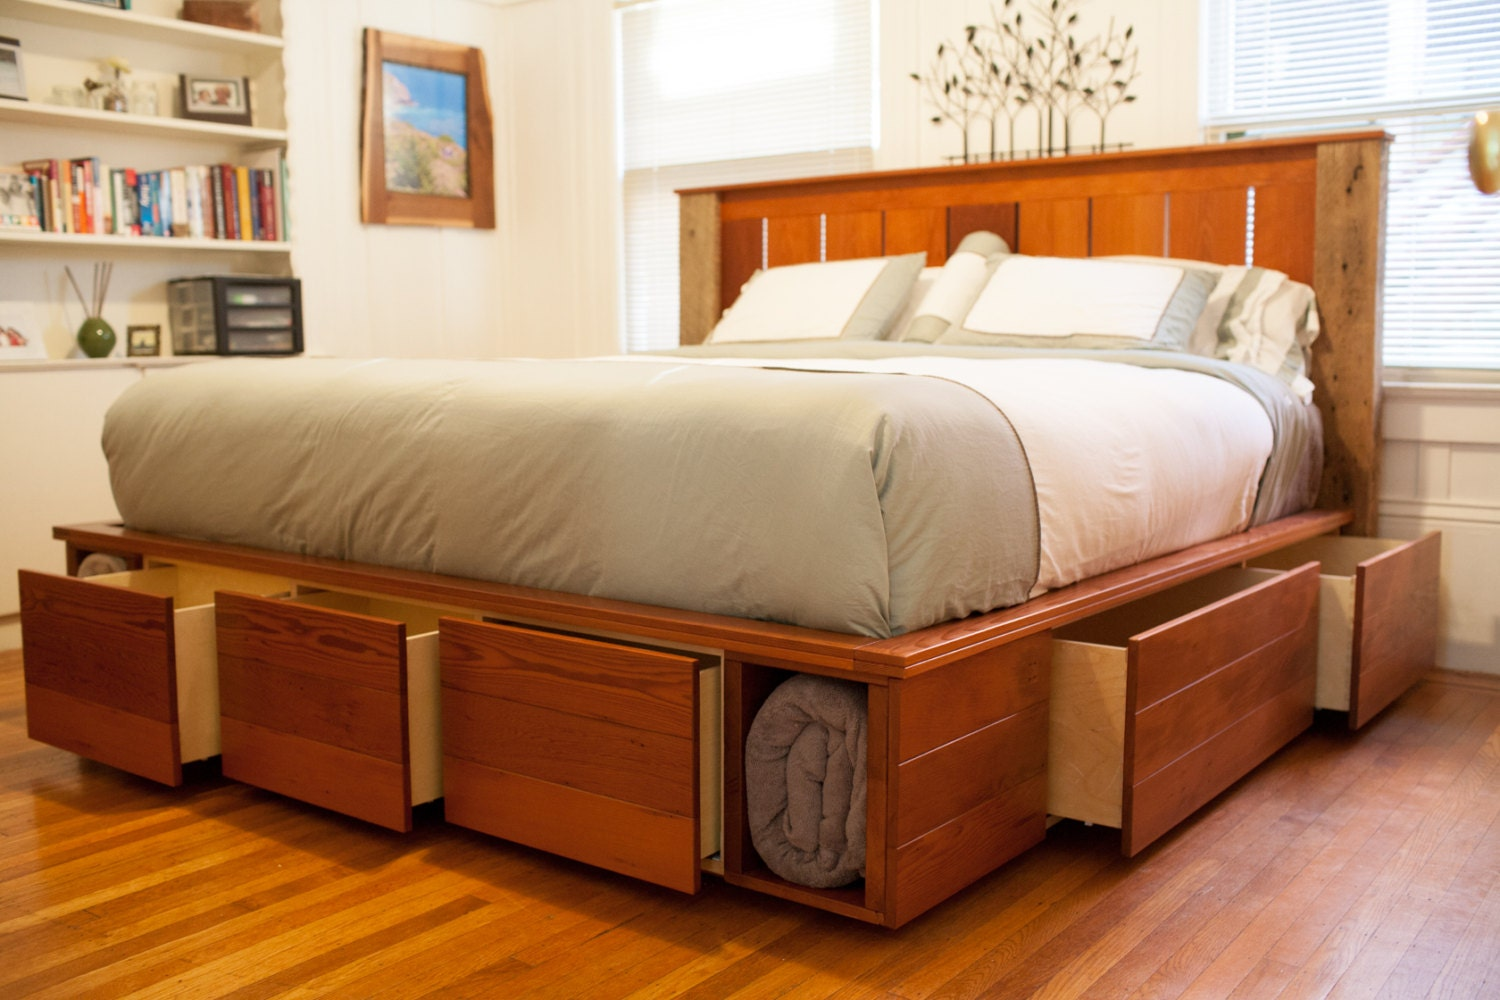 King Captains Bed With Drawers images